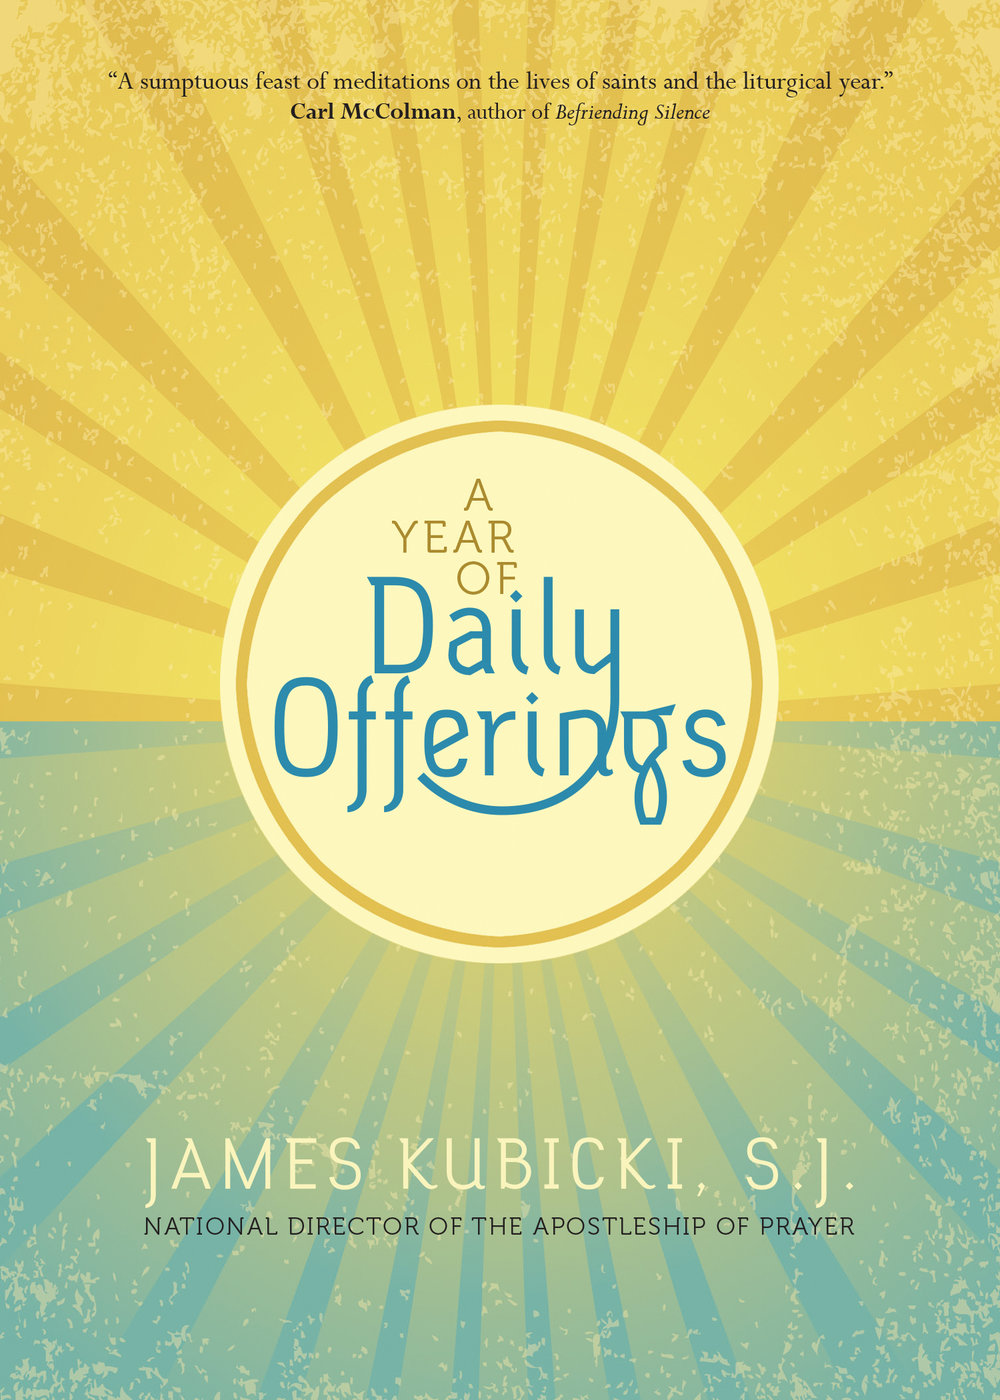 A Year of Daily Offerings Book Cover.jpg